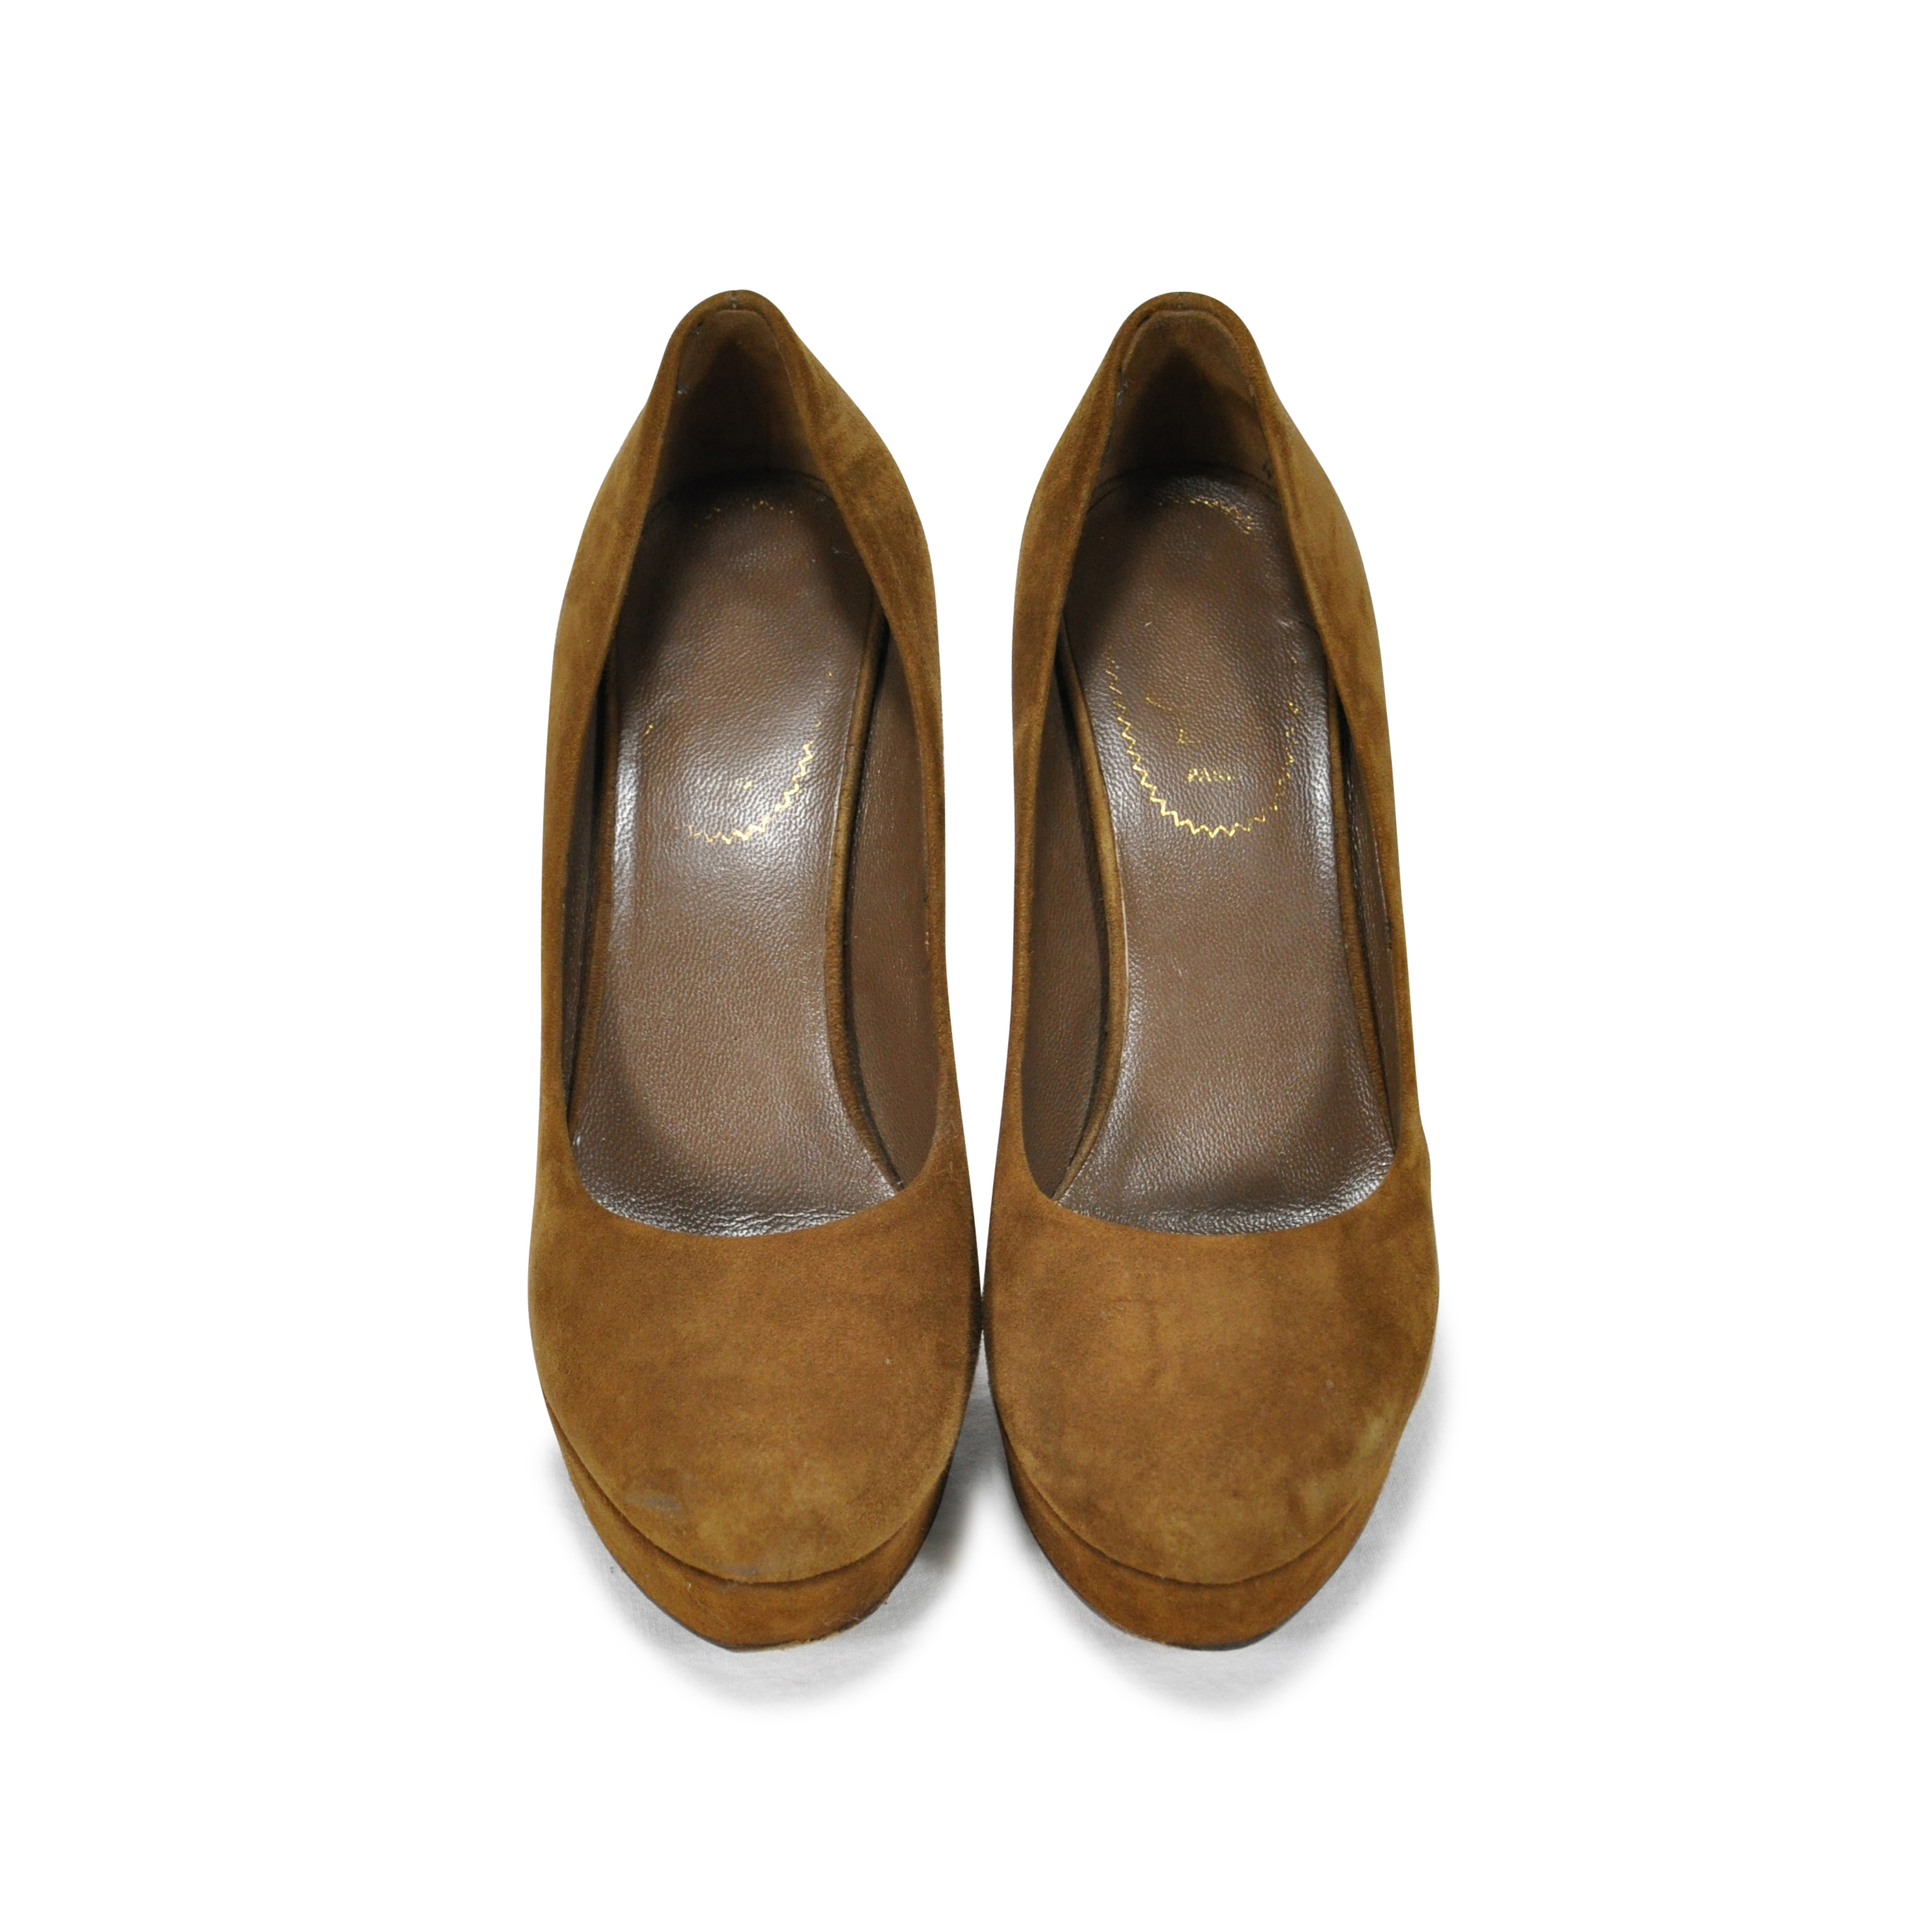 a29a3f5850f Authentic Second Hand Yves Saint Laurent Suede Palais Pumps (PSS-236-00003)  - THE FIFTH COLLECTION